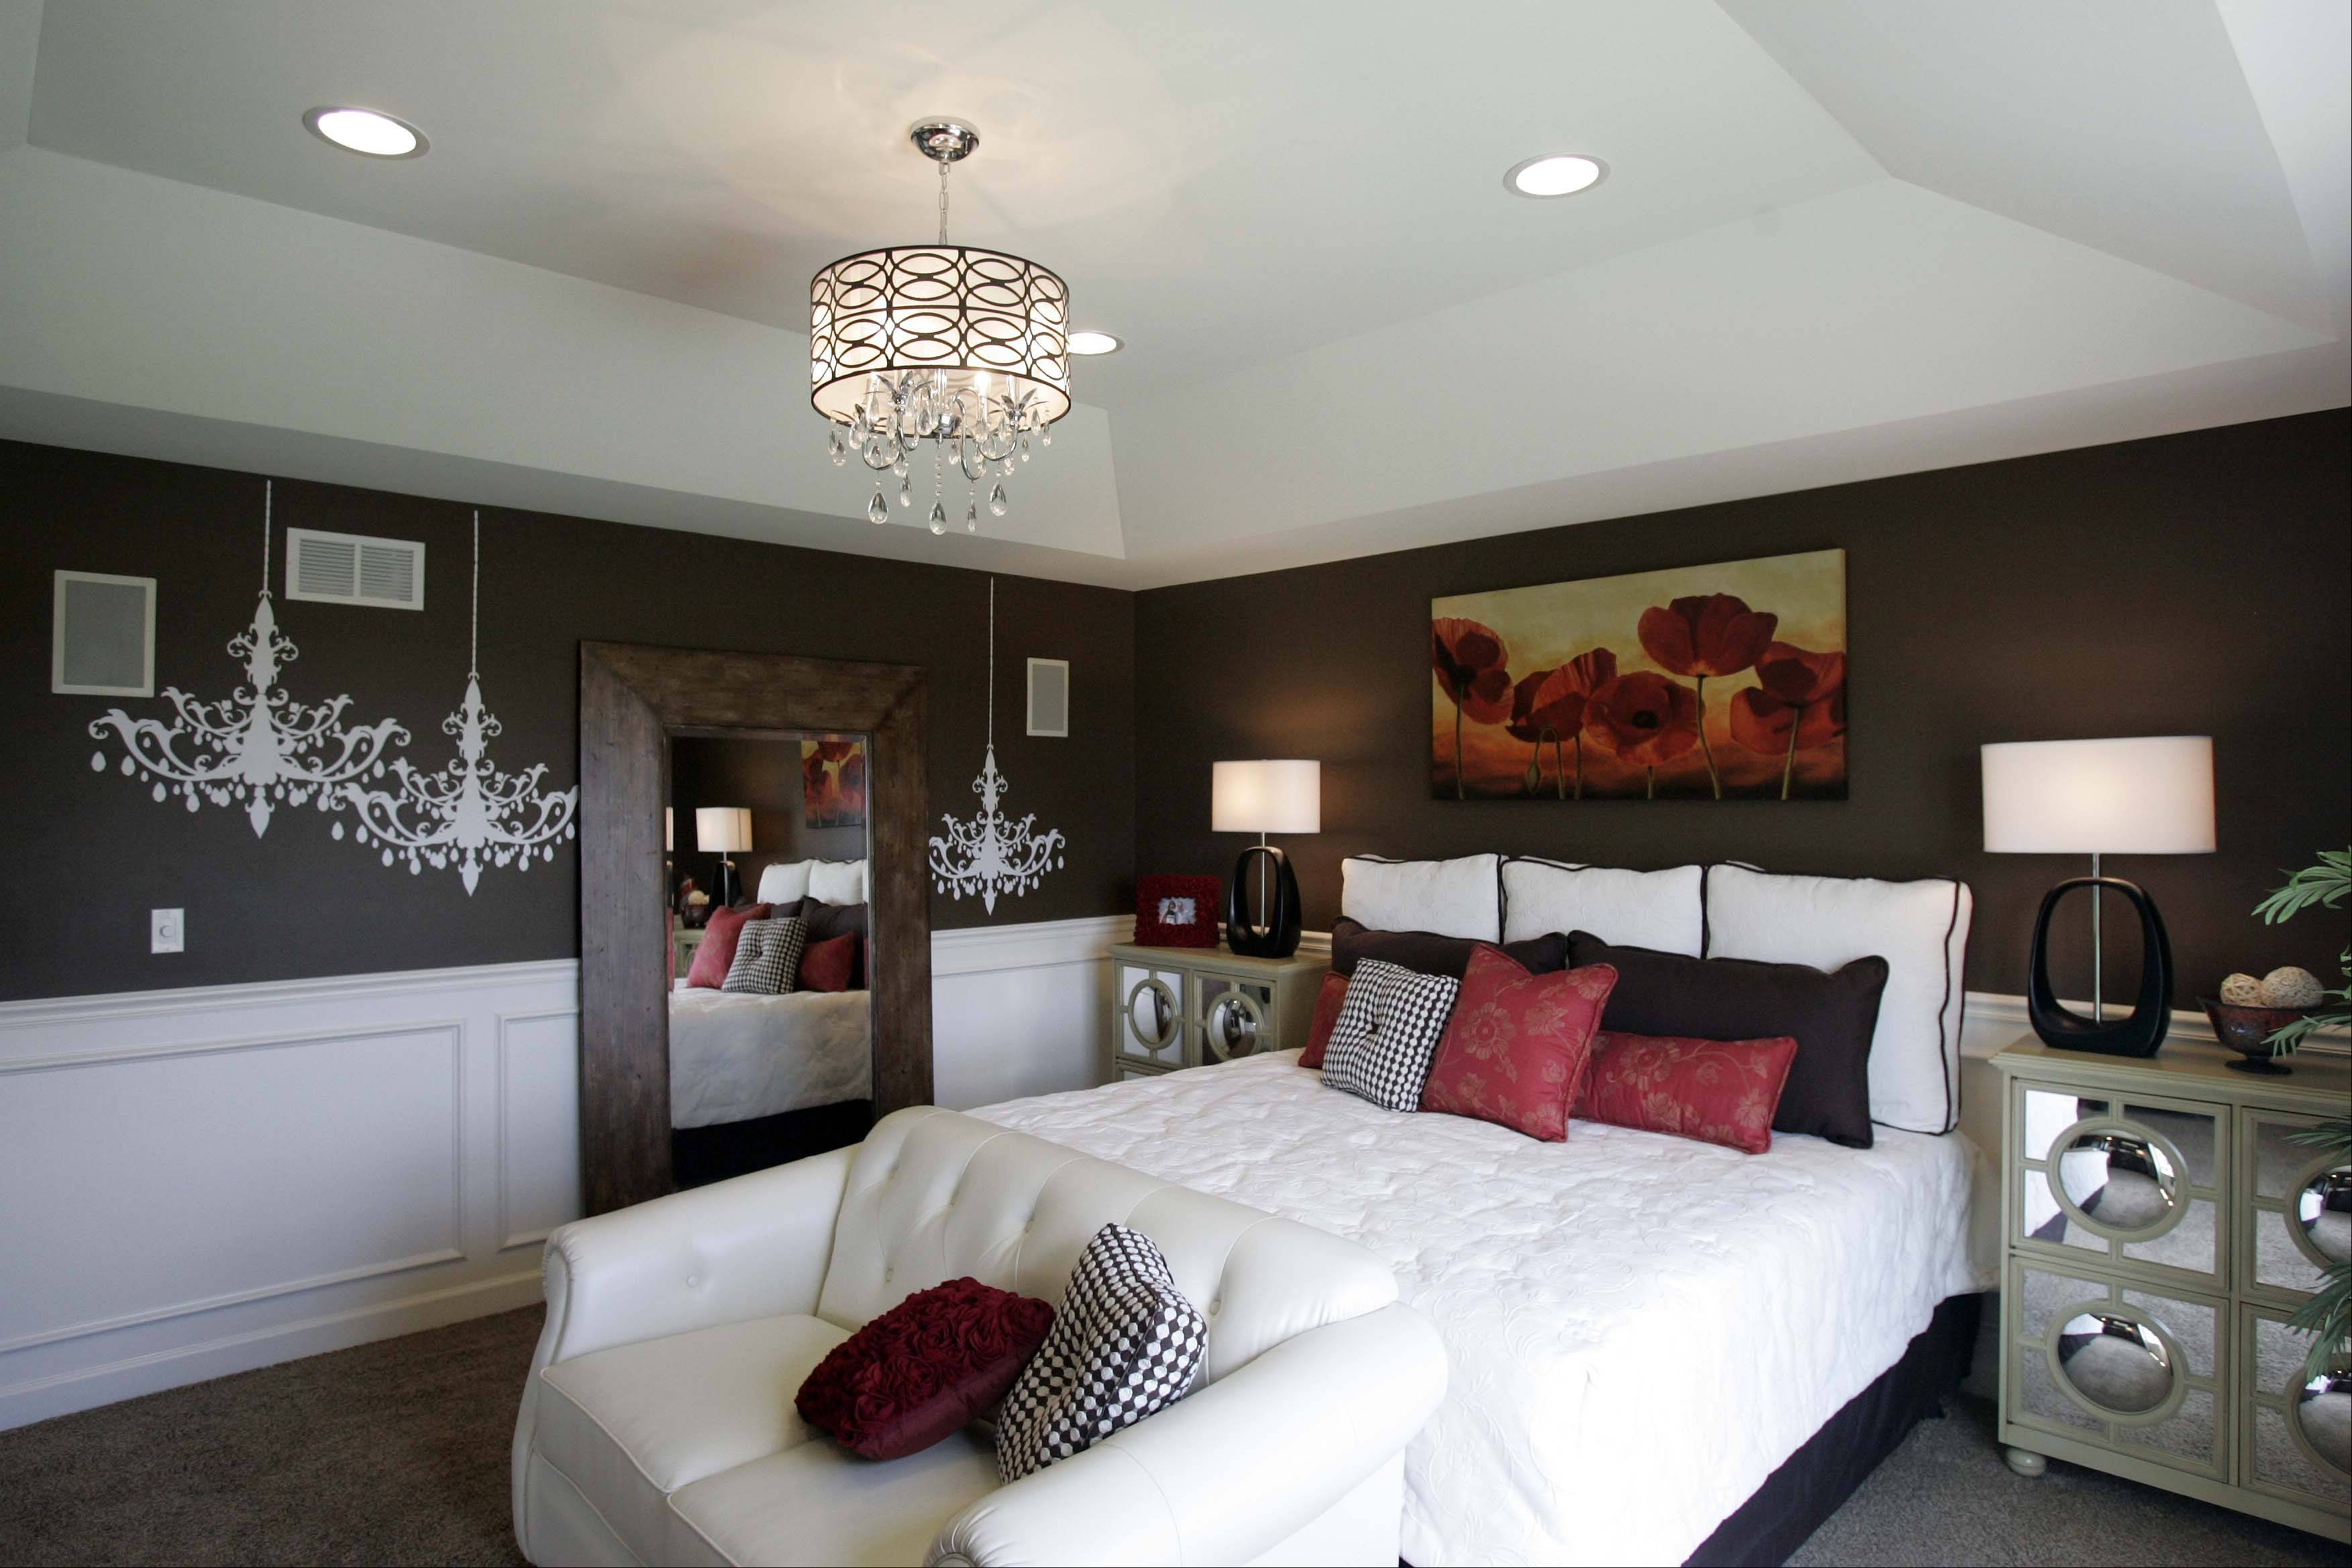 A chandelier hangs in the master bedroom of the Regency model at Regency Estates in St. Charles.